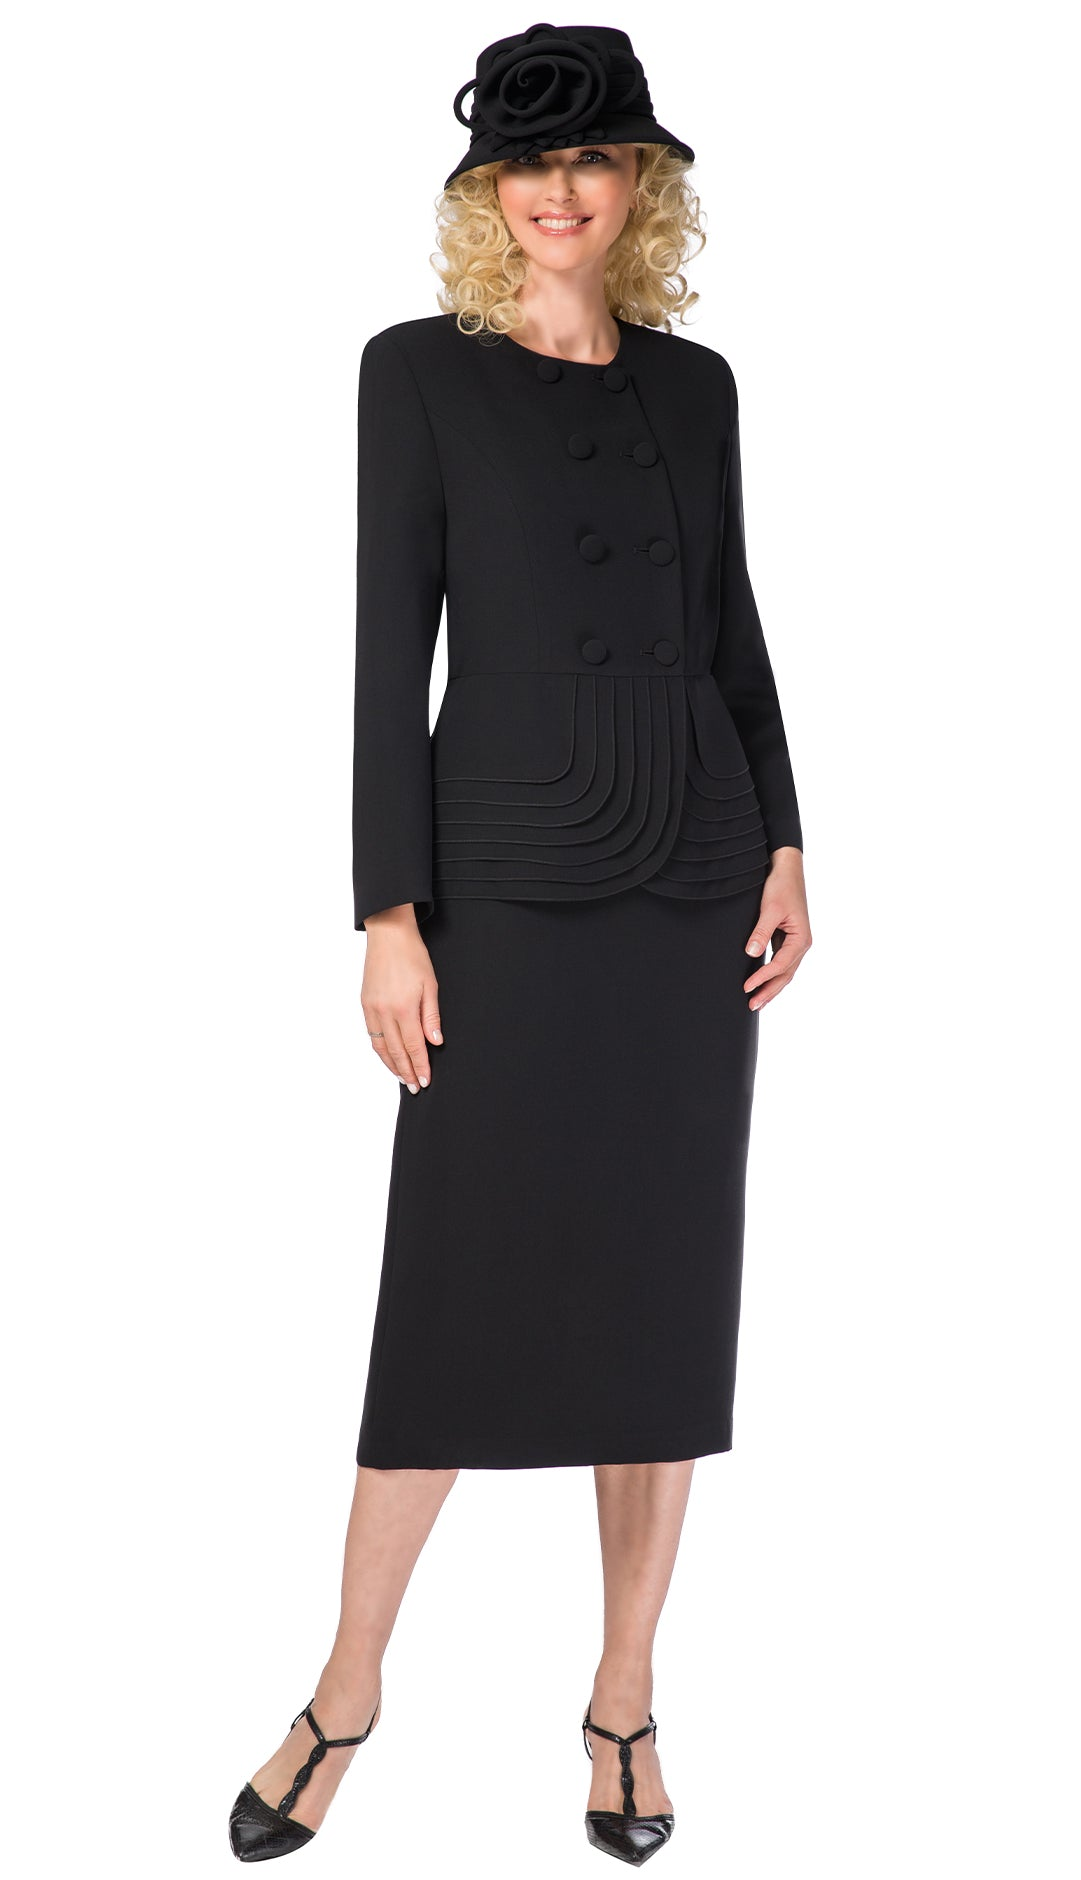 Giovanna Suit 0902-Black - Church Suits For Less